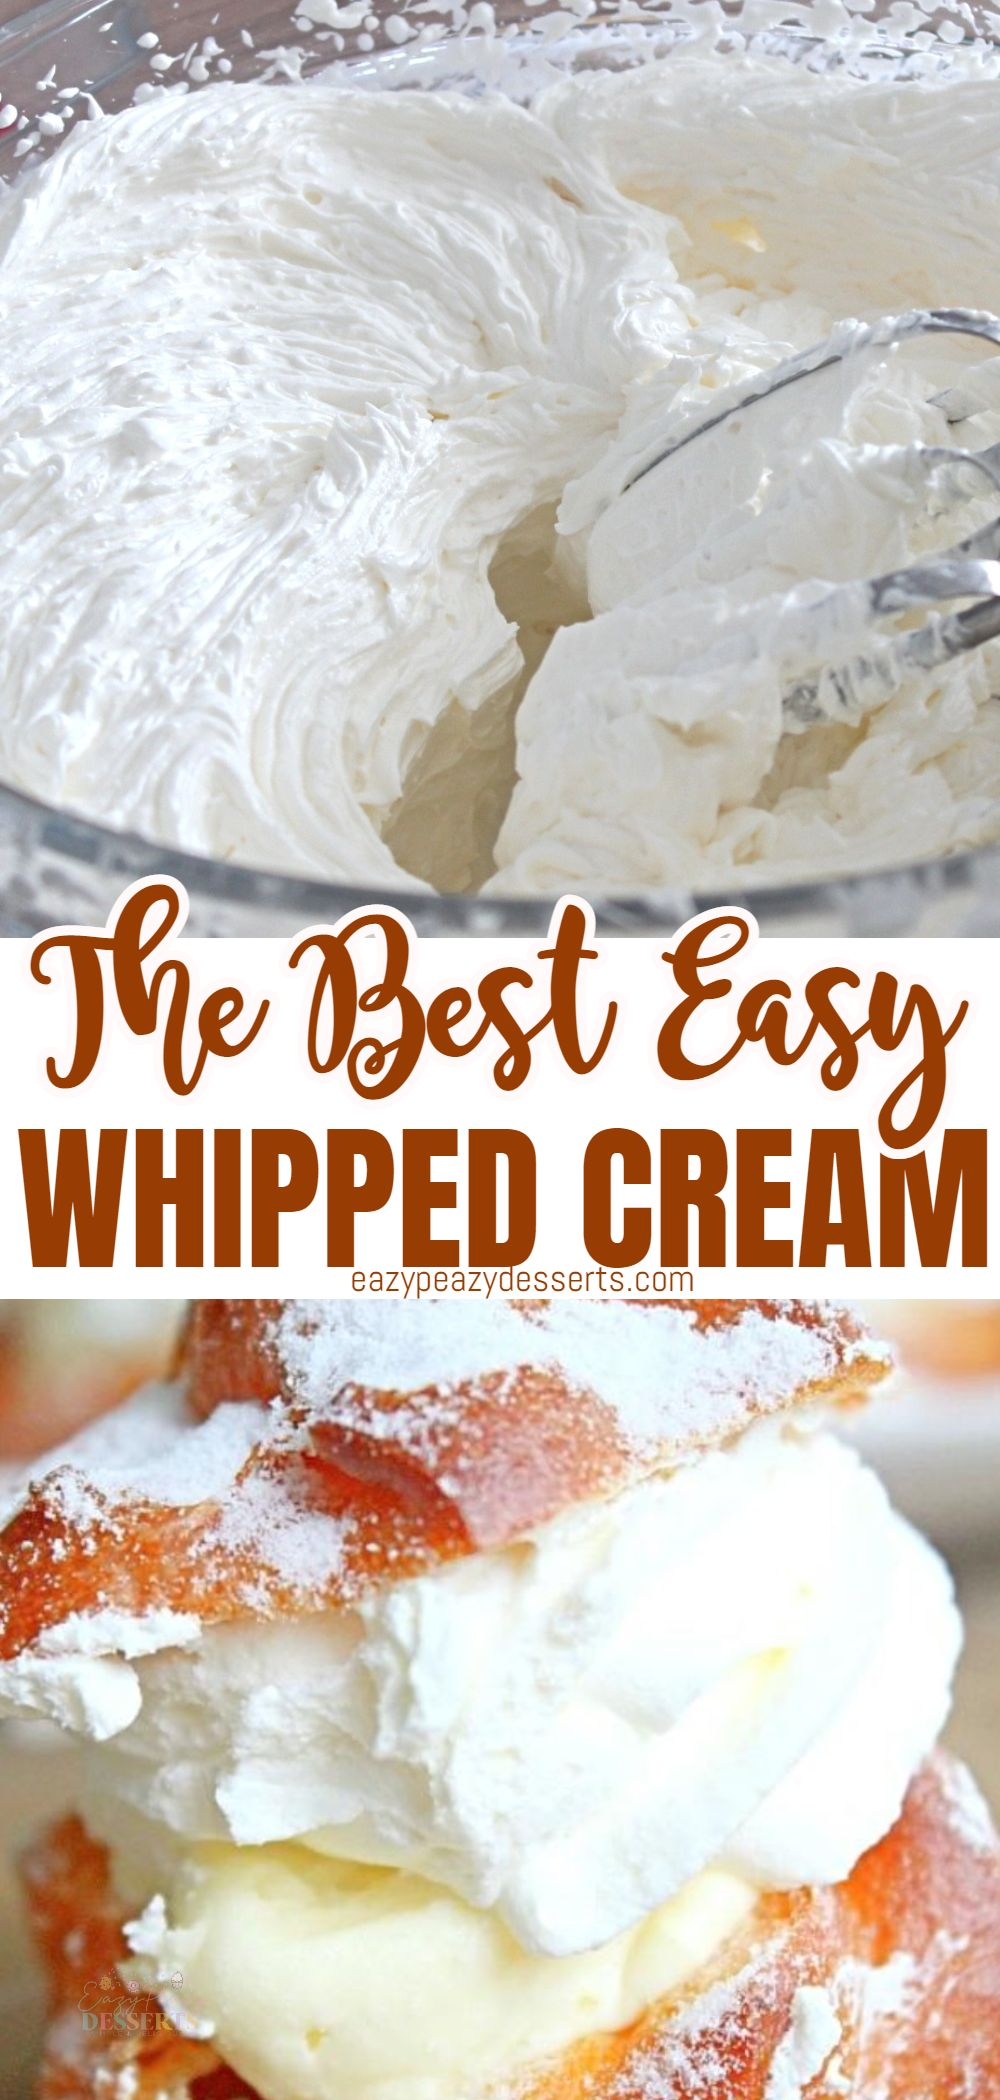 Who doesn't love whipped cream? It's soft, light and delicious, but a perfectly whipped cream does have its secrets. In this tutorial I'm going to show you an easy whipped cream recipe, so that you can make the most delicious desserts with whipped cream in no time! via @eazypeazydesserts